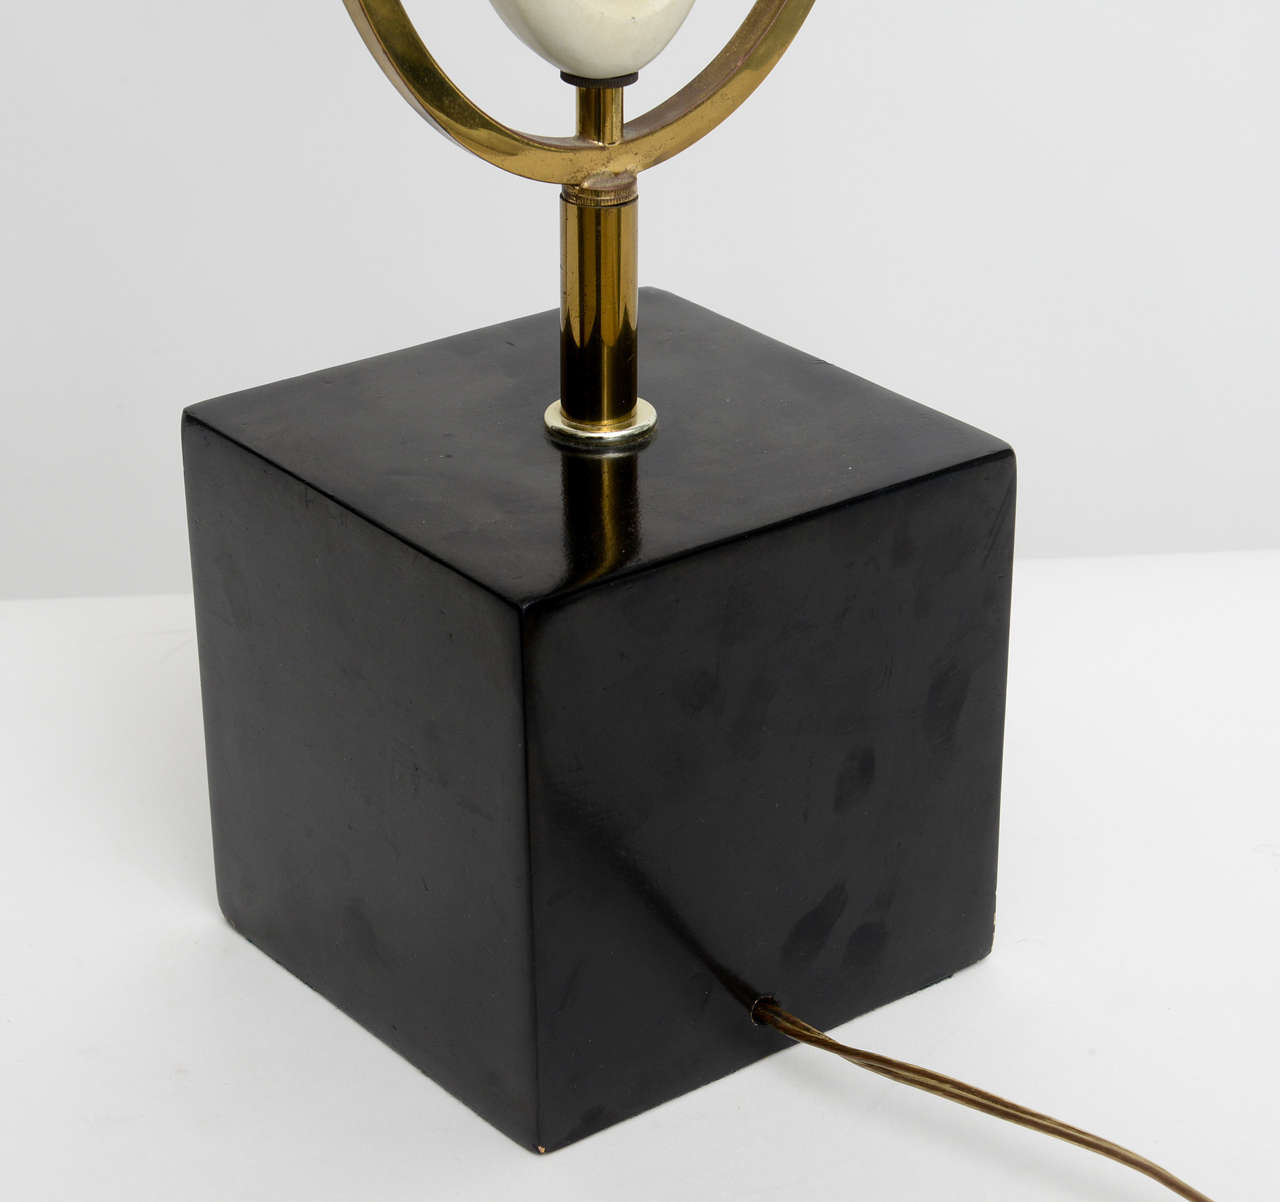 Italian Modern Brass Enamel and Glass Lamp, Arteluce For Sale 3